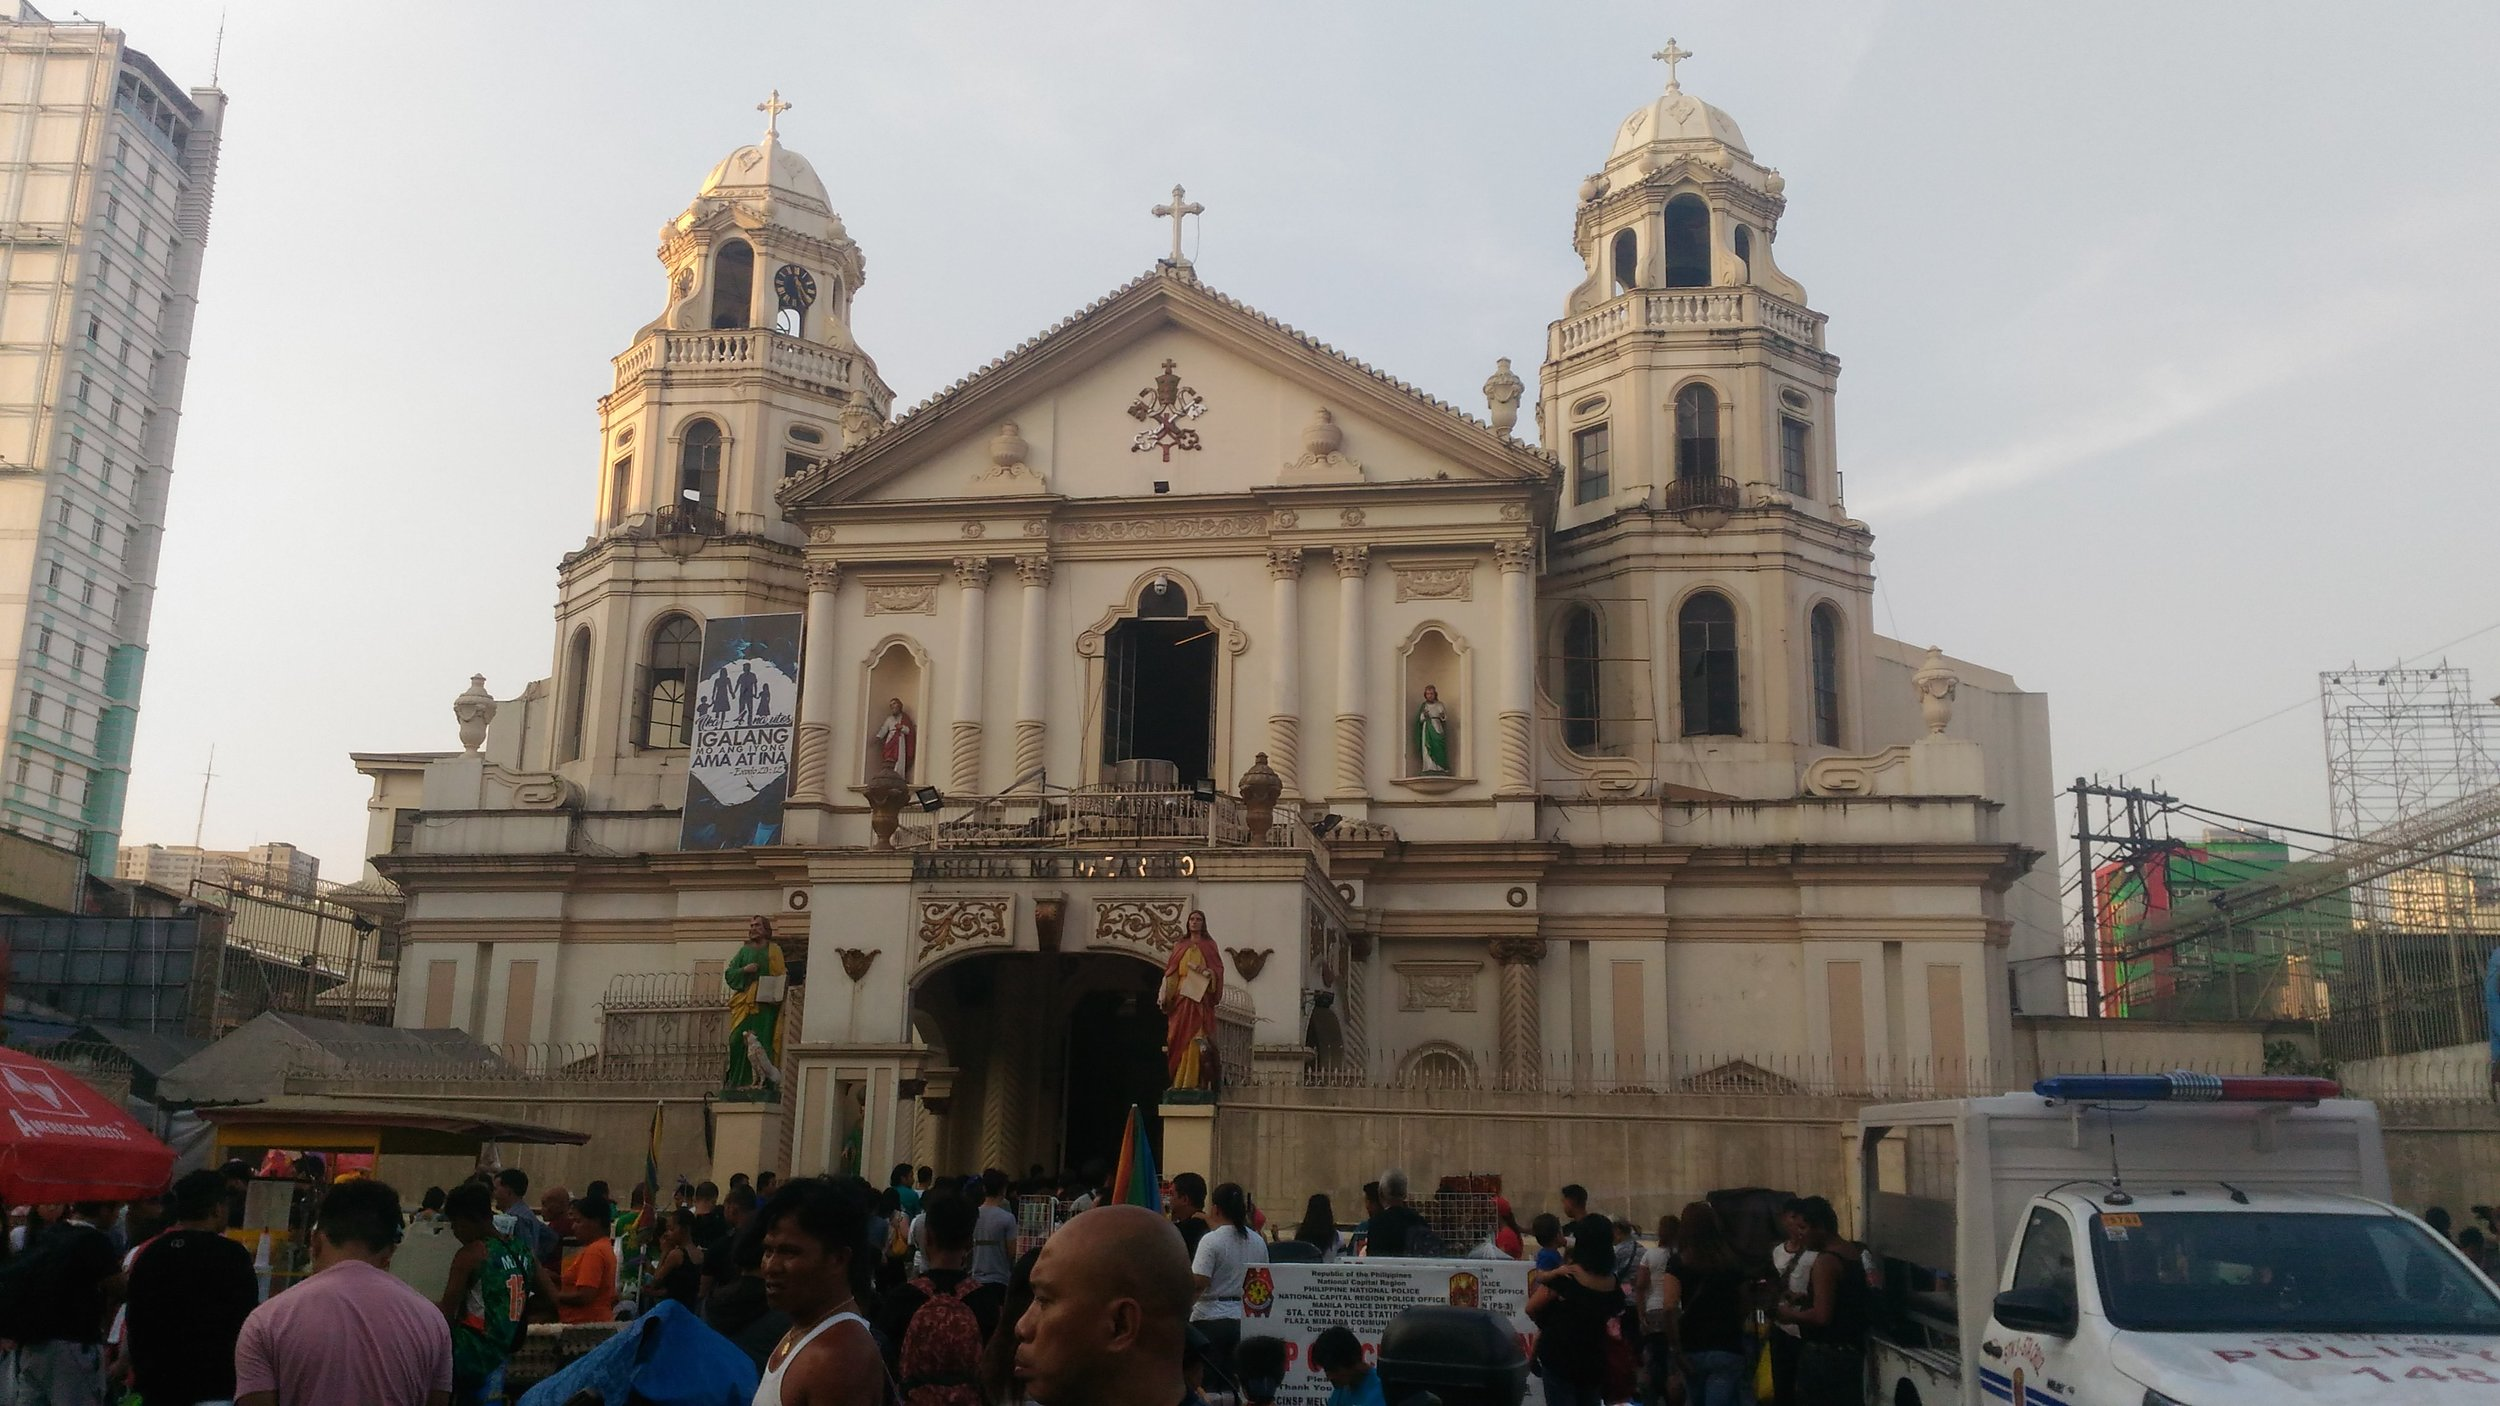 """This """"Quiapo Church"""" is the most densely-populated in the country, especially on Fridays and Sundays due to the presence of the Black Nazarene, paraded on Jan. 9 every year by hundreds of thousands of the penitent, despite some injuries and even death. The Church also carried a banner for months which read """"Huwag kang Papatay,"""" or """"Thou shalt not kill,"""" after the mounting number of killings by police in the bloody drug war. Photo by Baby Lyn Cacho Resulta."""